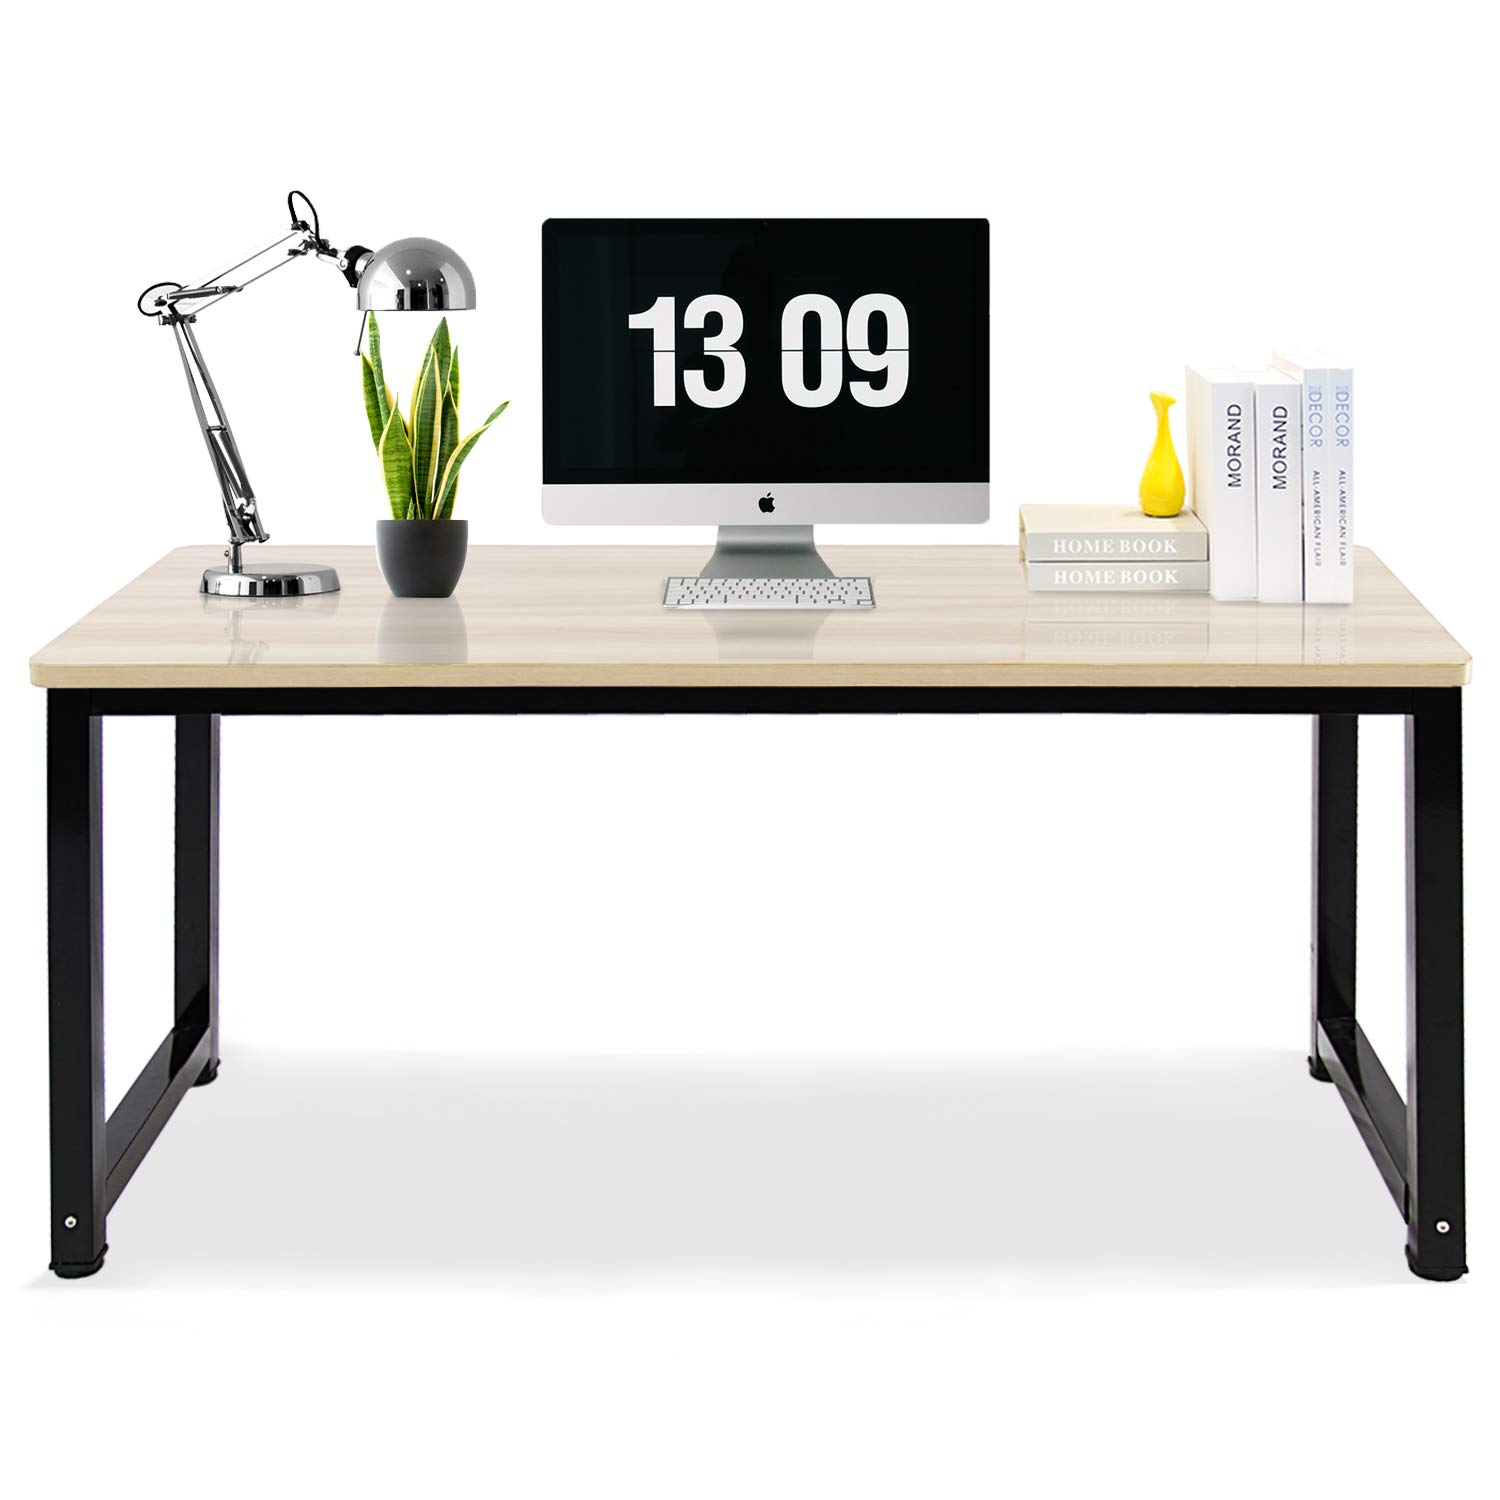 DL Furniture-Computer Desk Office Table 47''inches, Stable Metal Frame Wood Surface, Wood Work-Station Study Home Office Furniture - 47.3'' x 23.6'' x 29.2'' | White